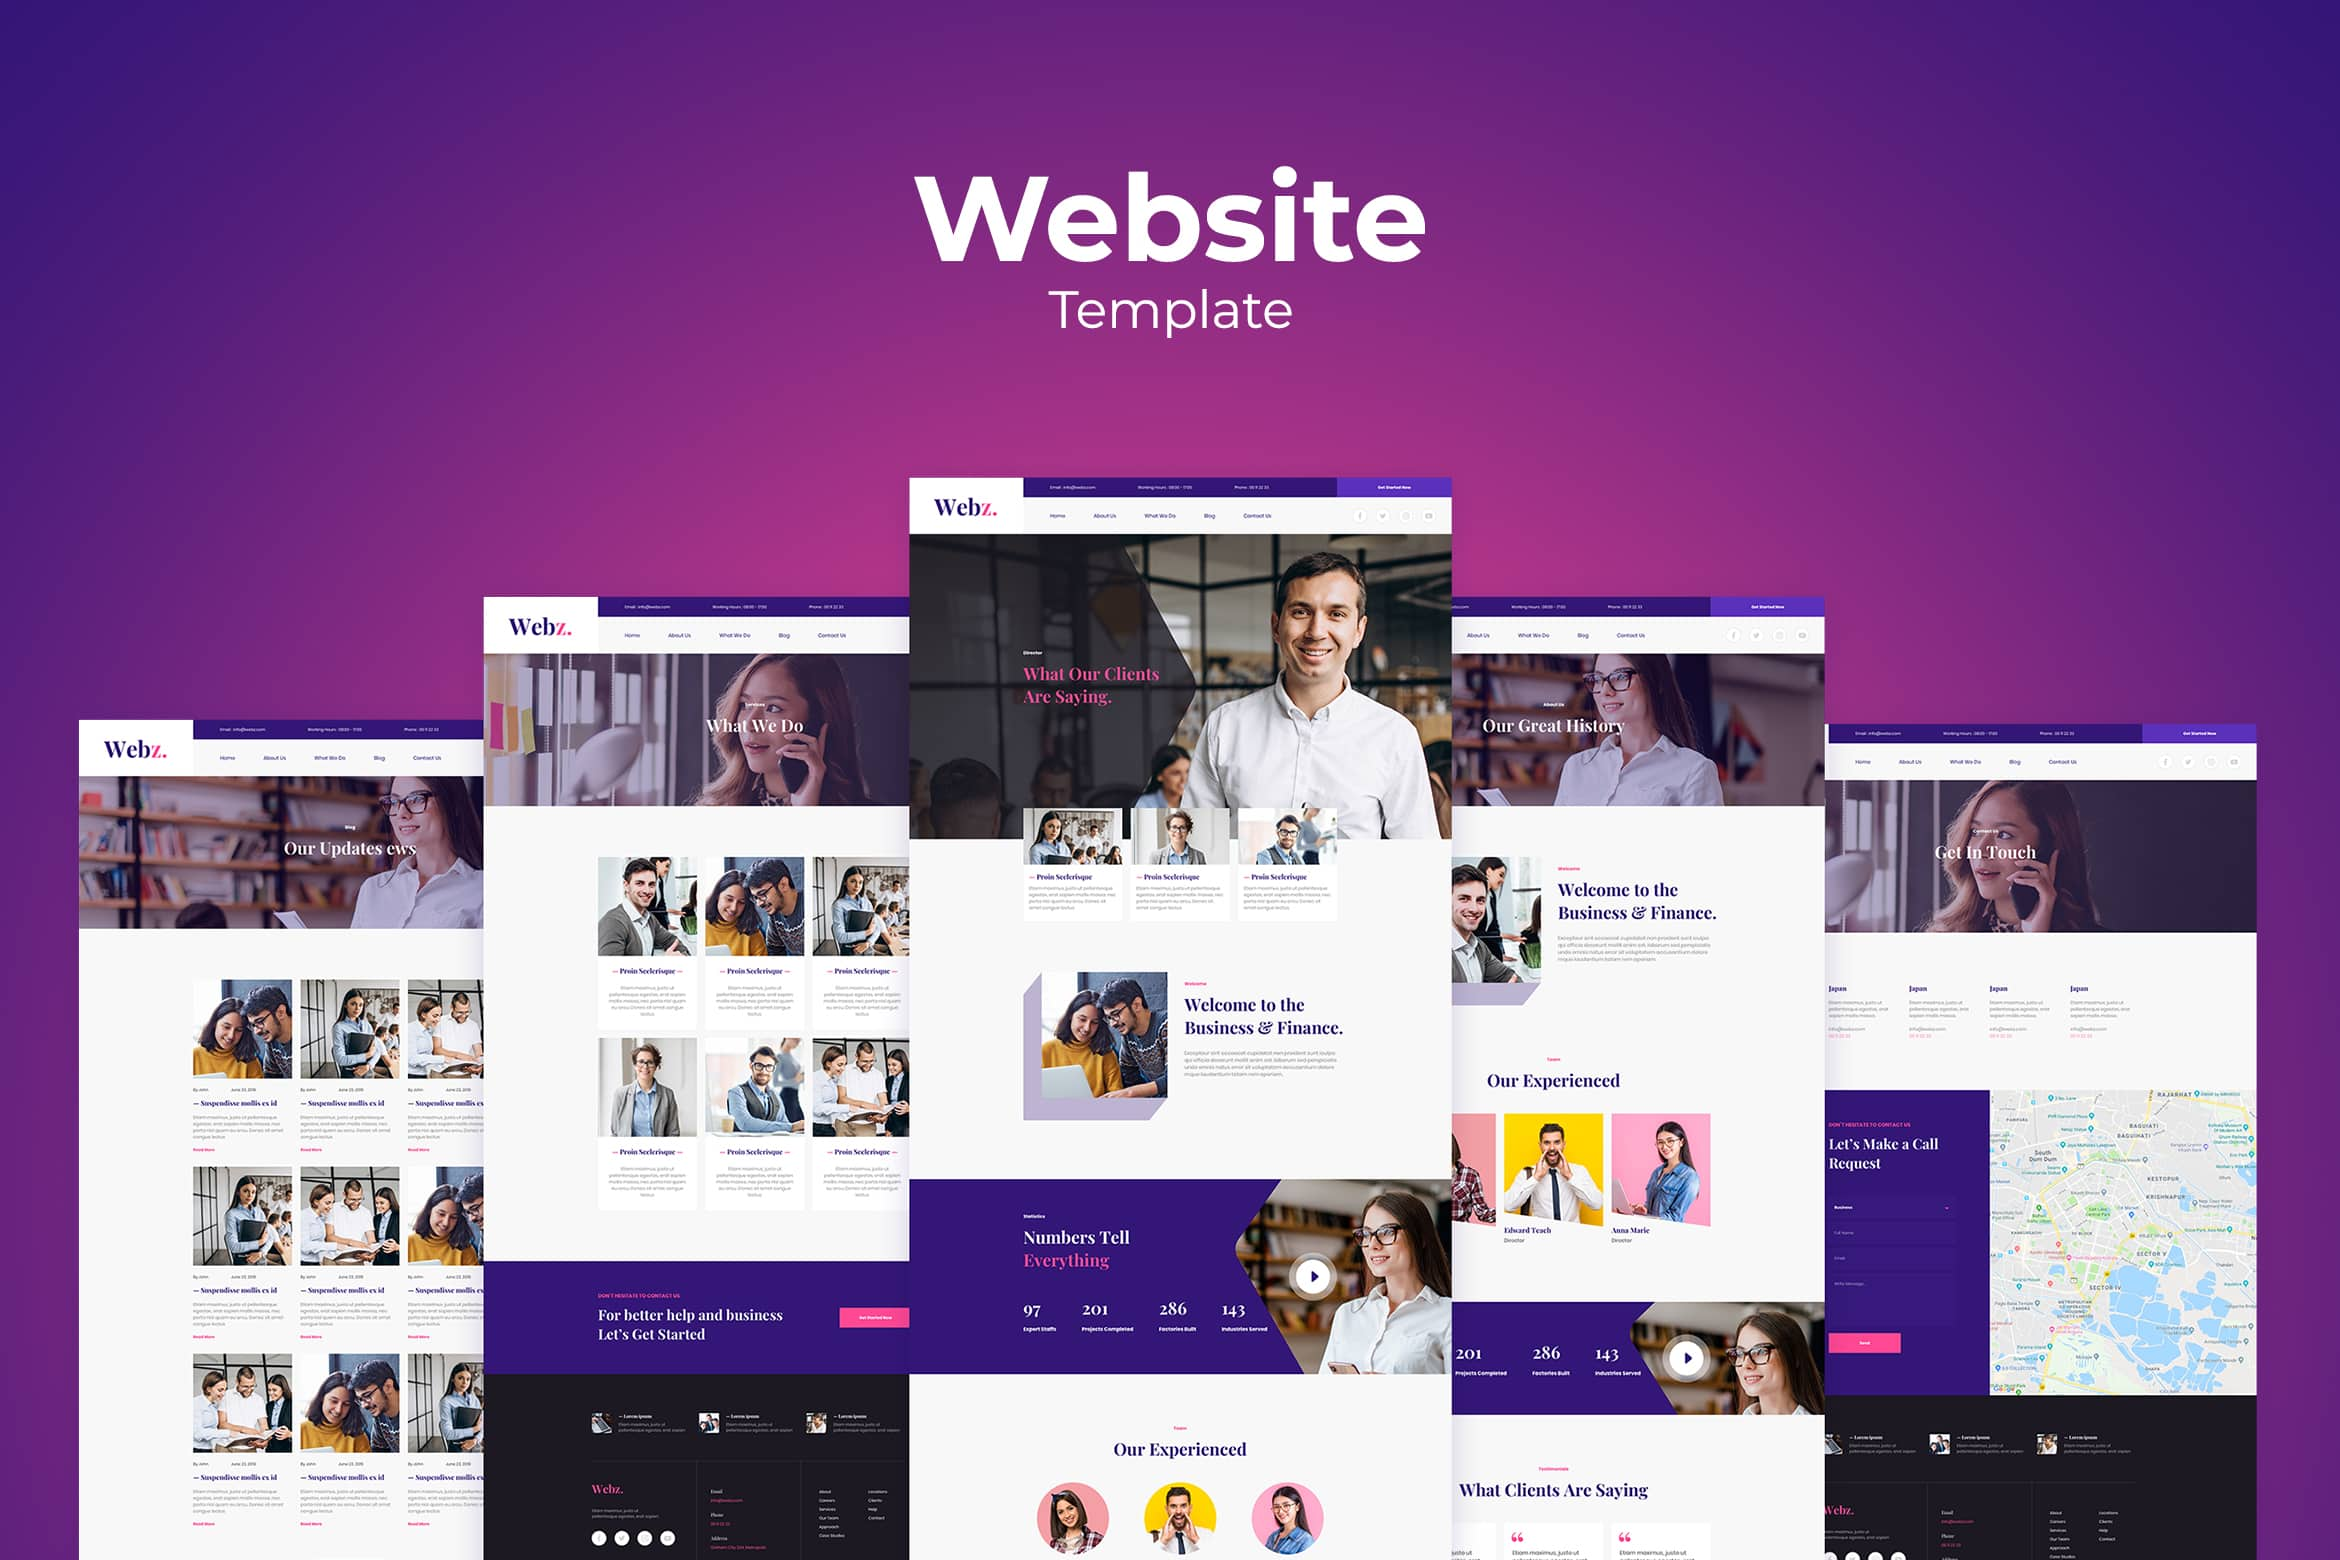 Website Template - Business & Finance Company